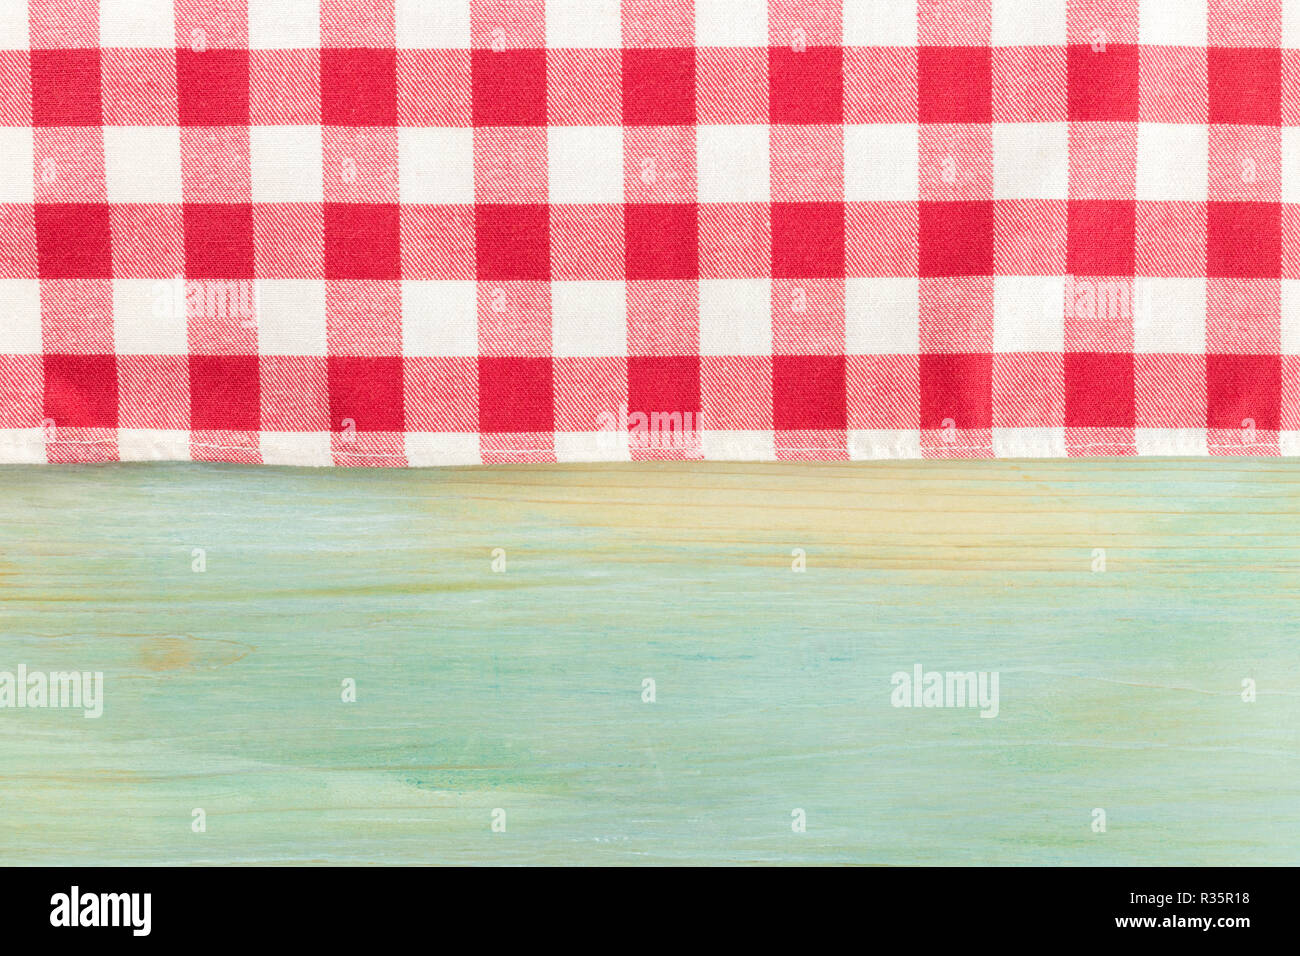 A photo of a gingham cloth on a teal background, an abstract restaurant frame with a place for text - Stock Image